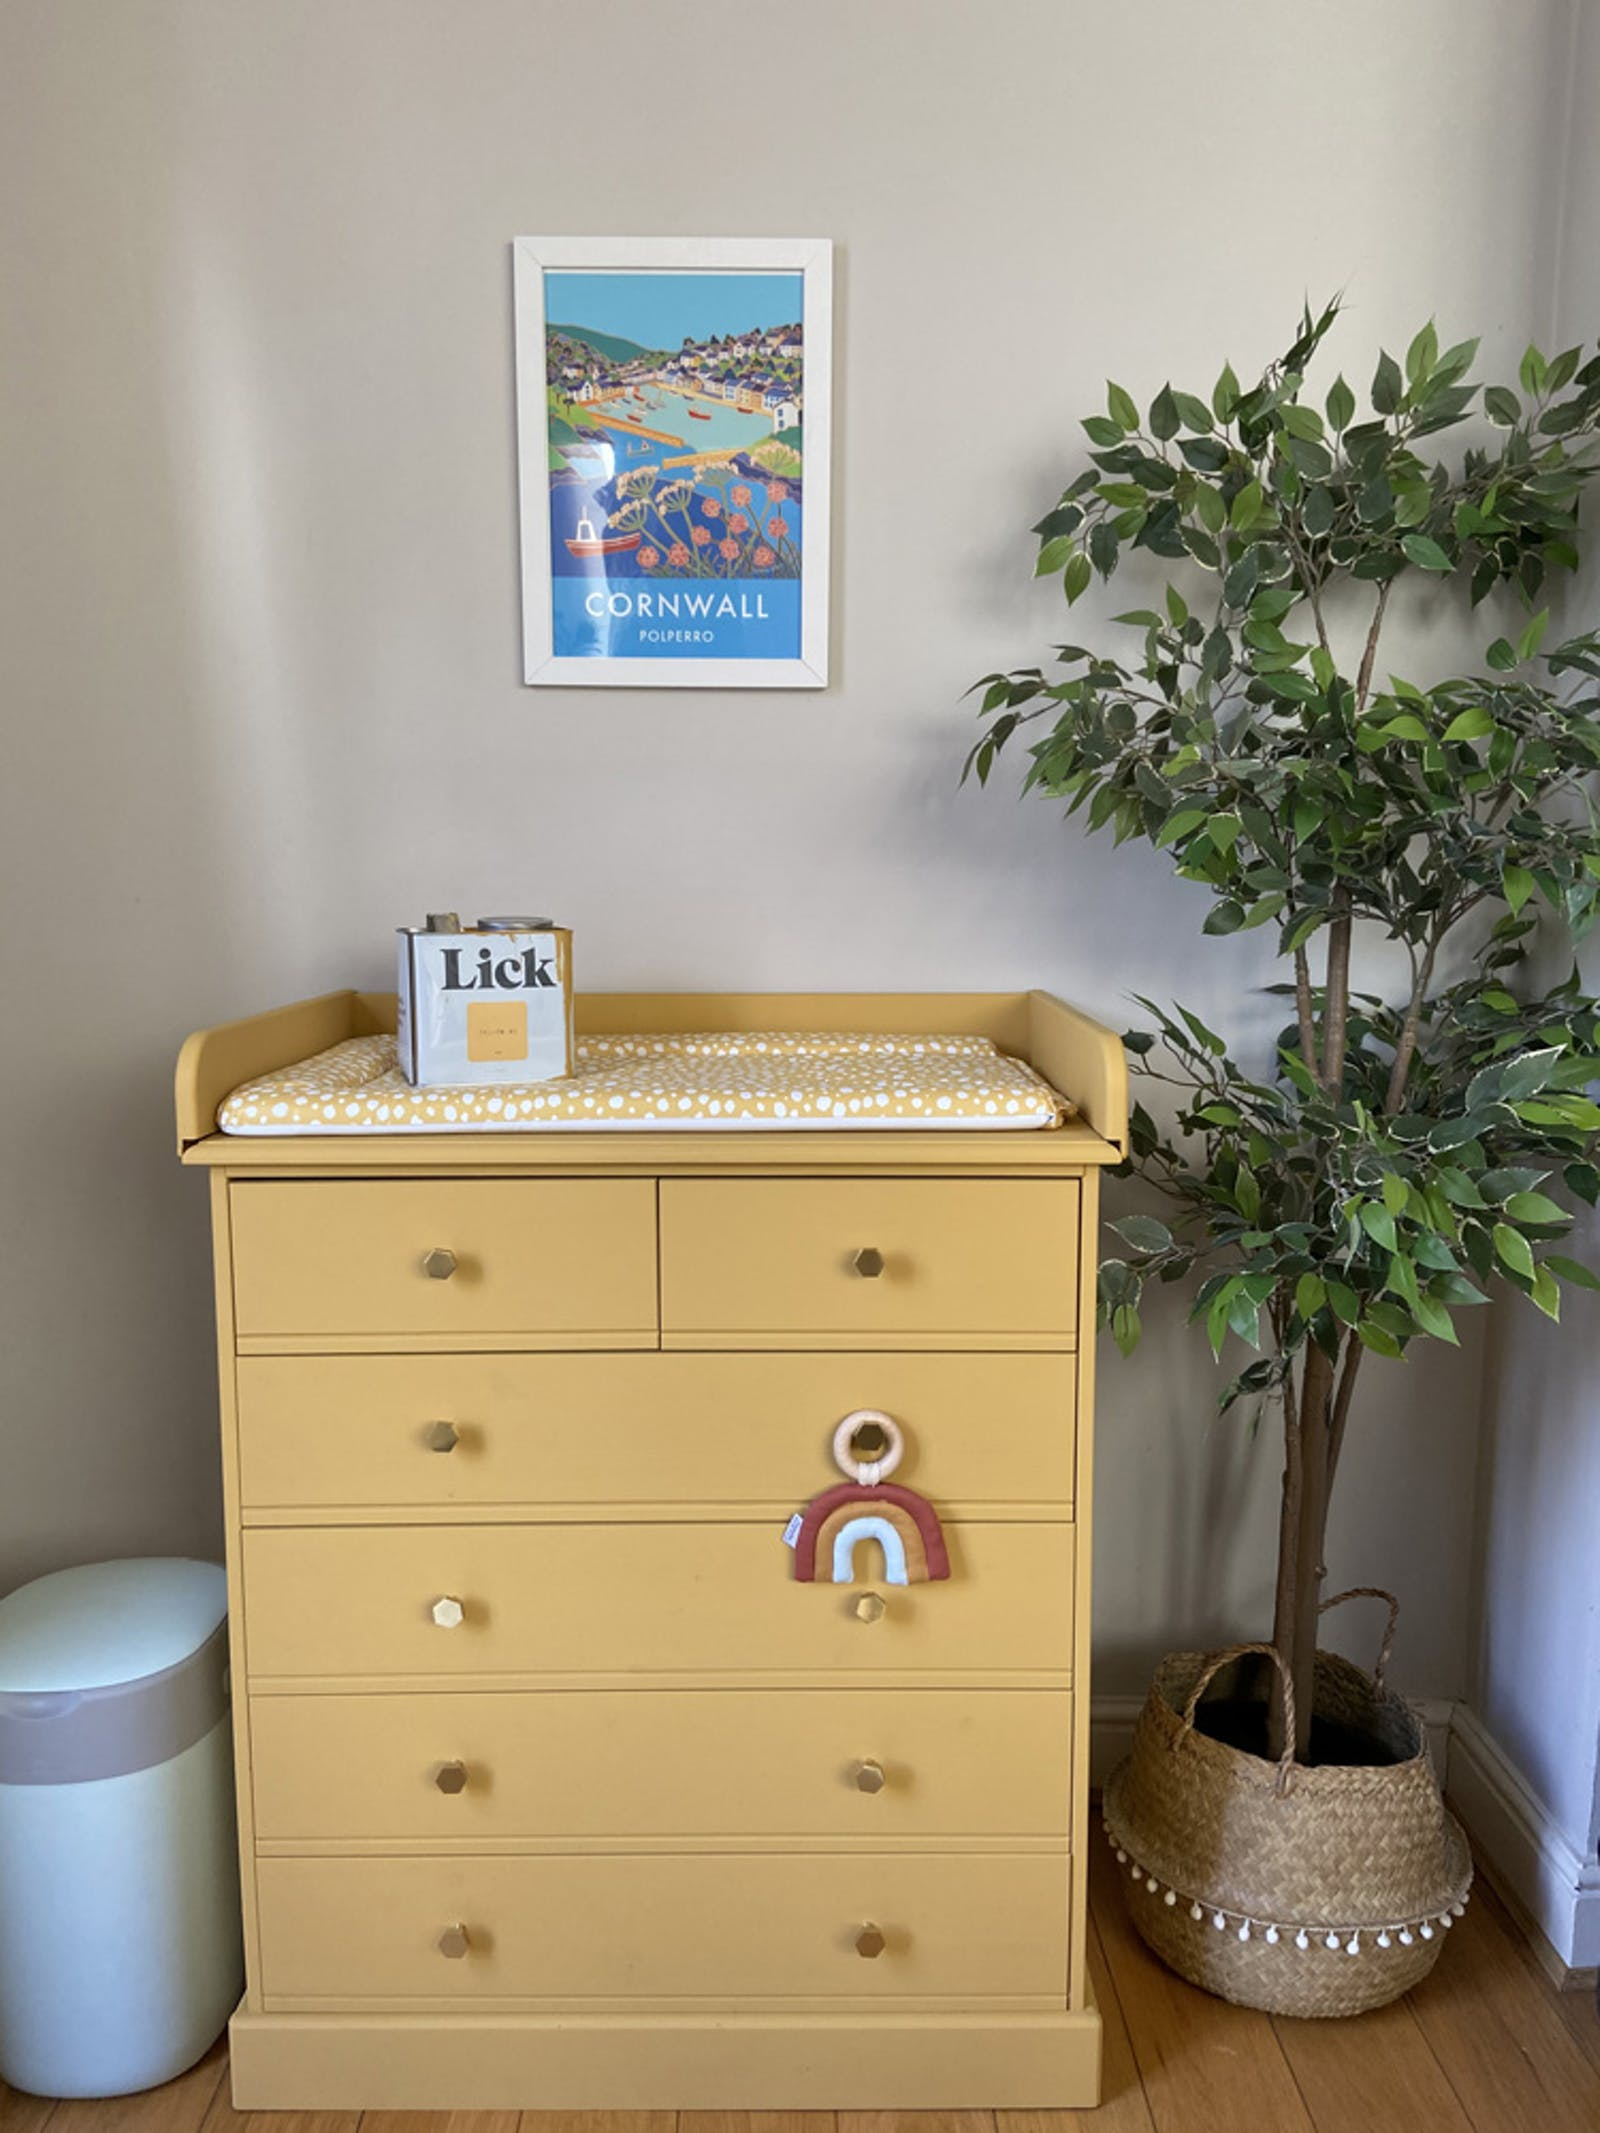 A baby changing table painted in Lick Yellow 02